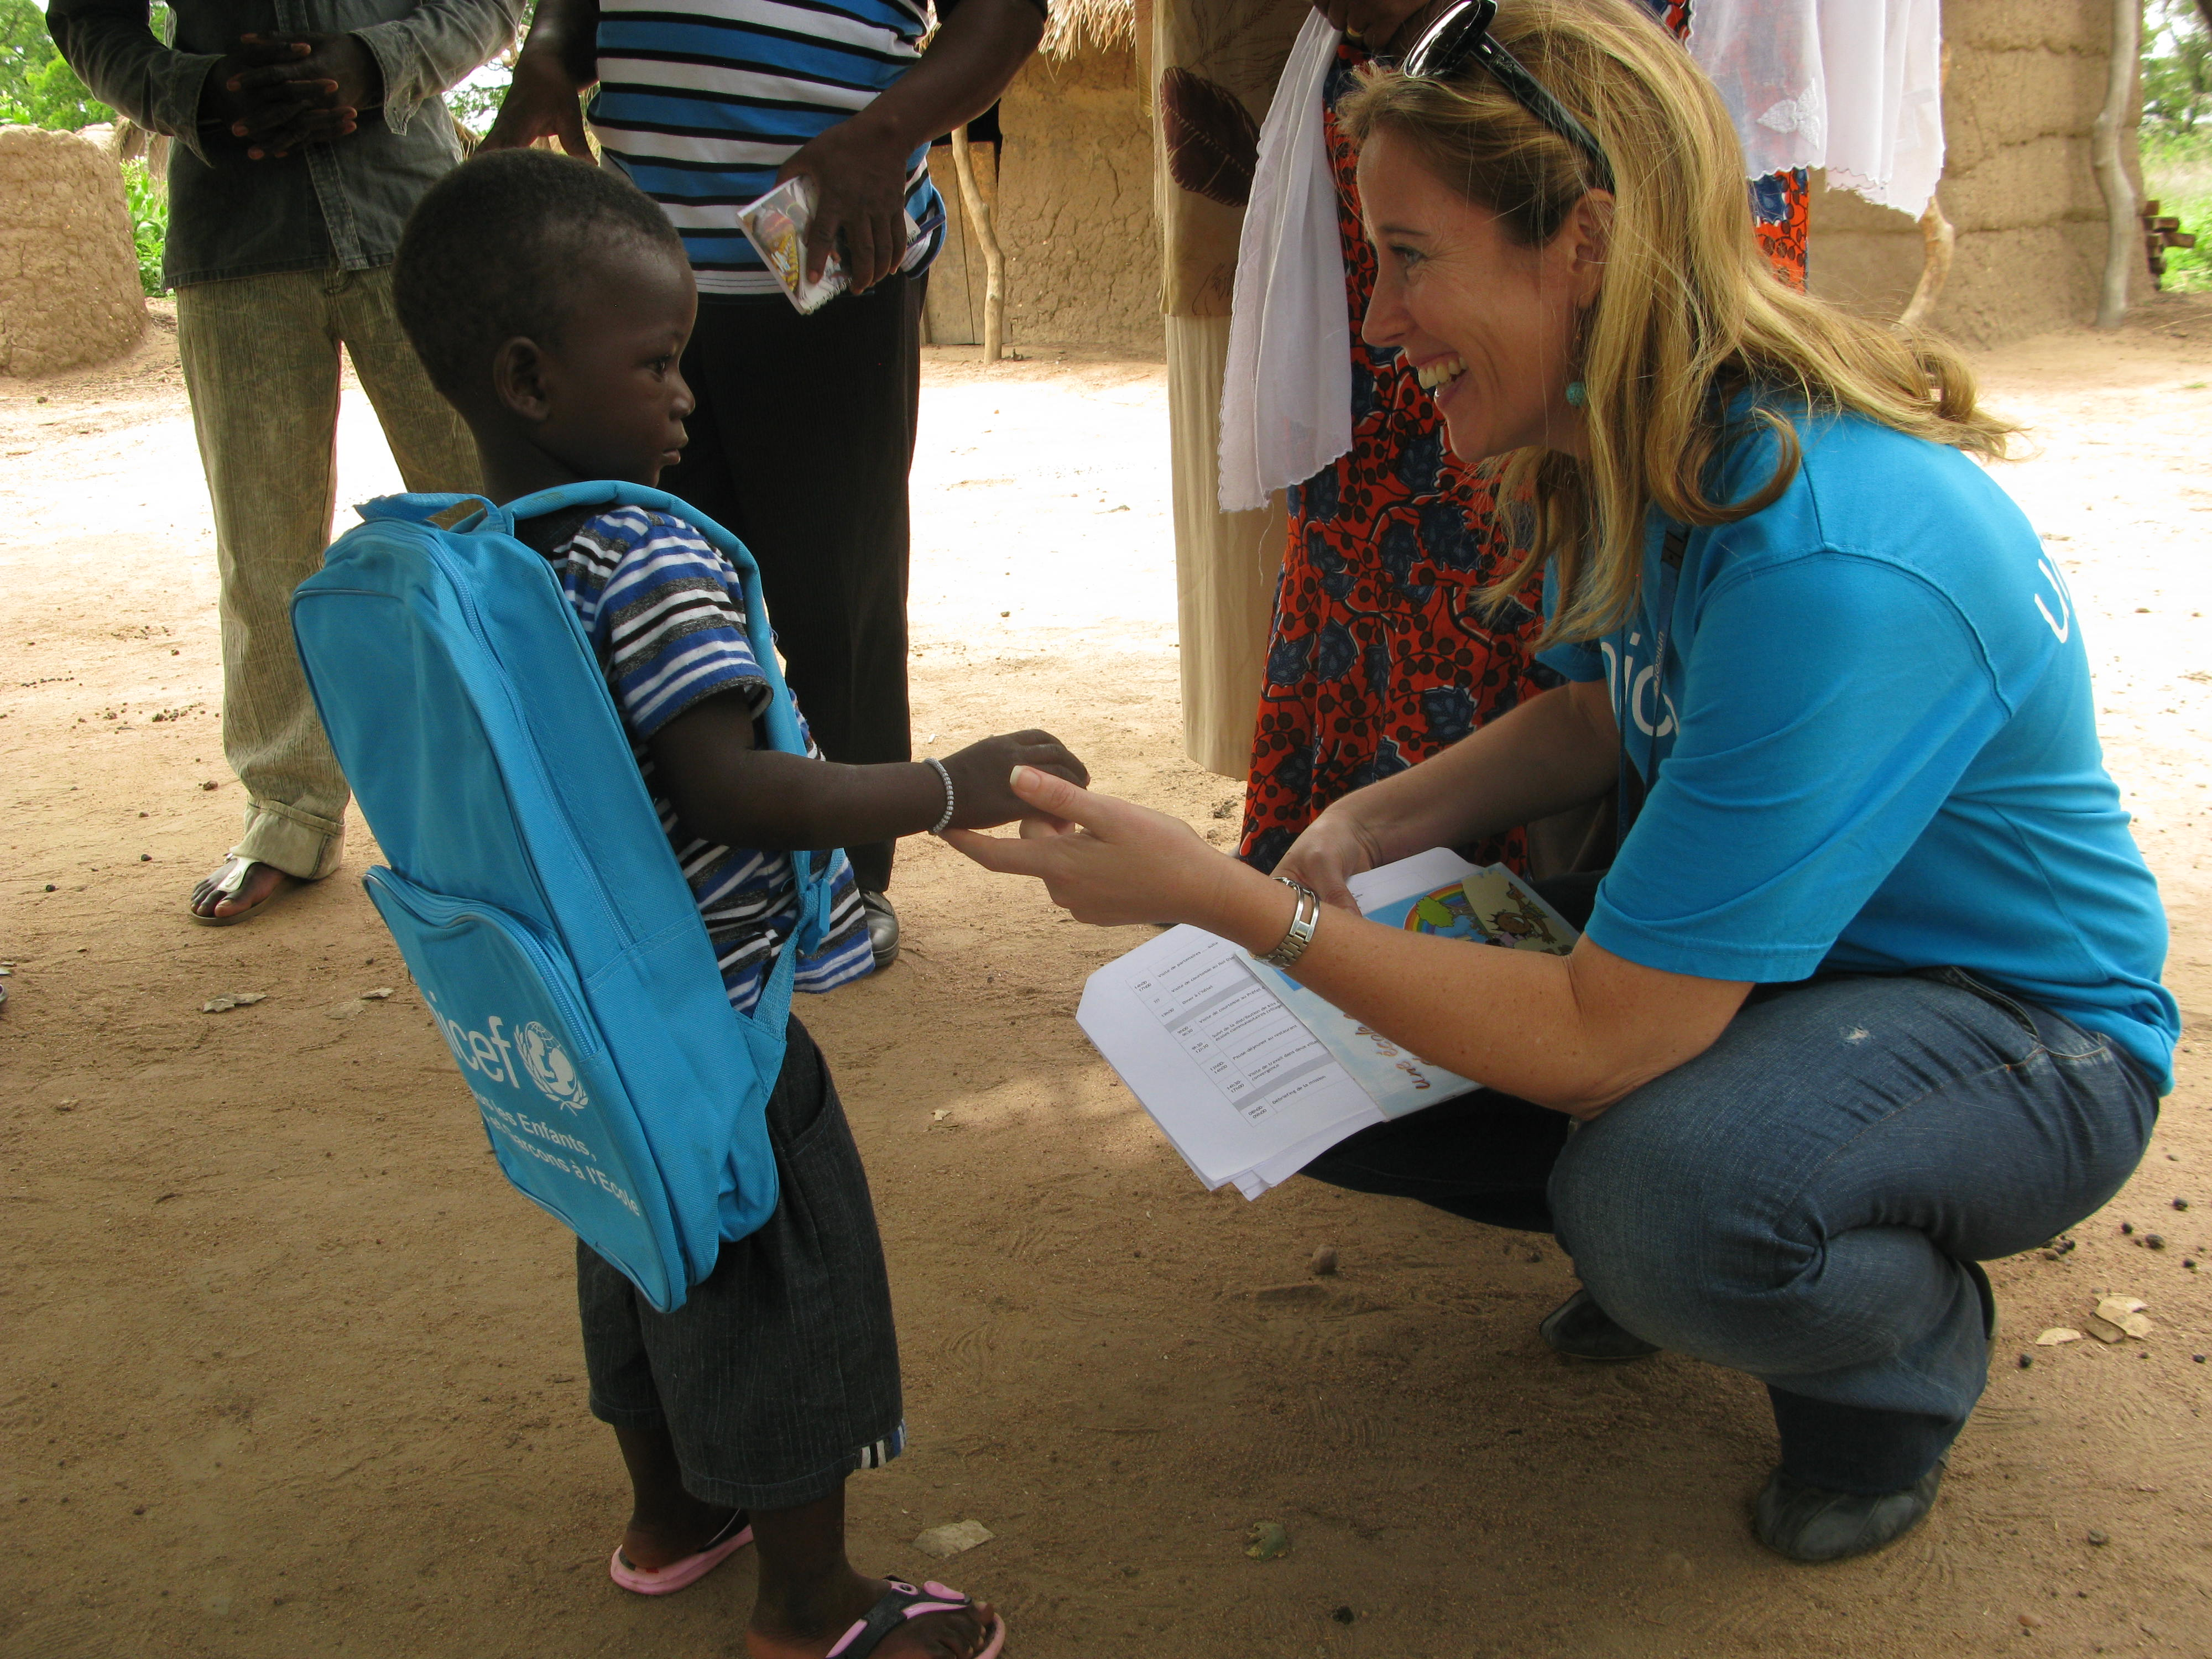 Christina de Bruin greets young boy in Côte d'Ivoire, Ivory Coast.